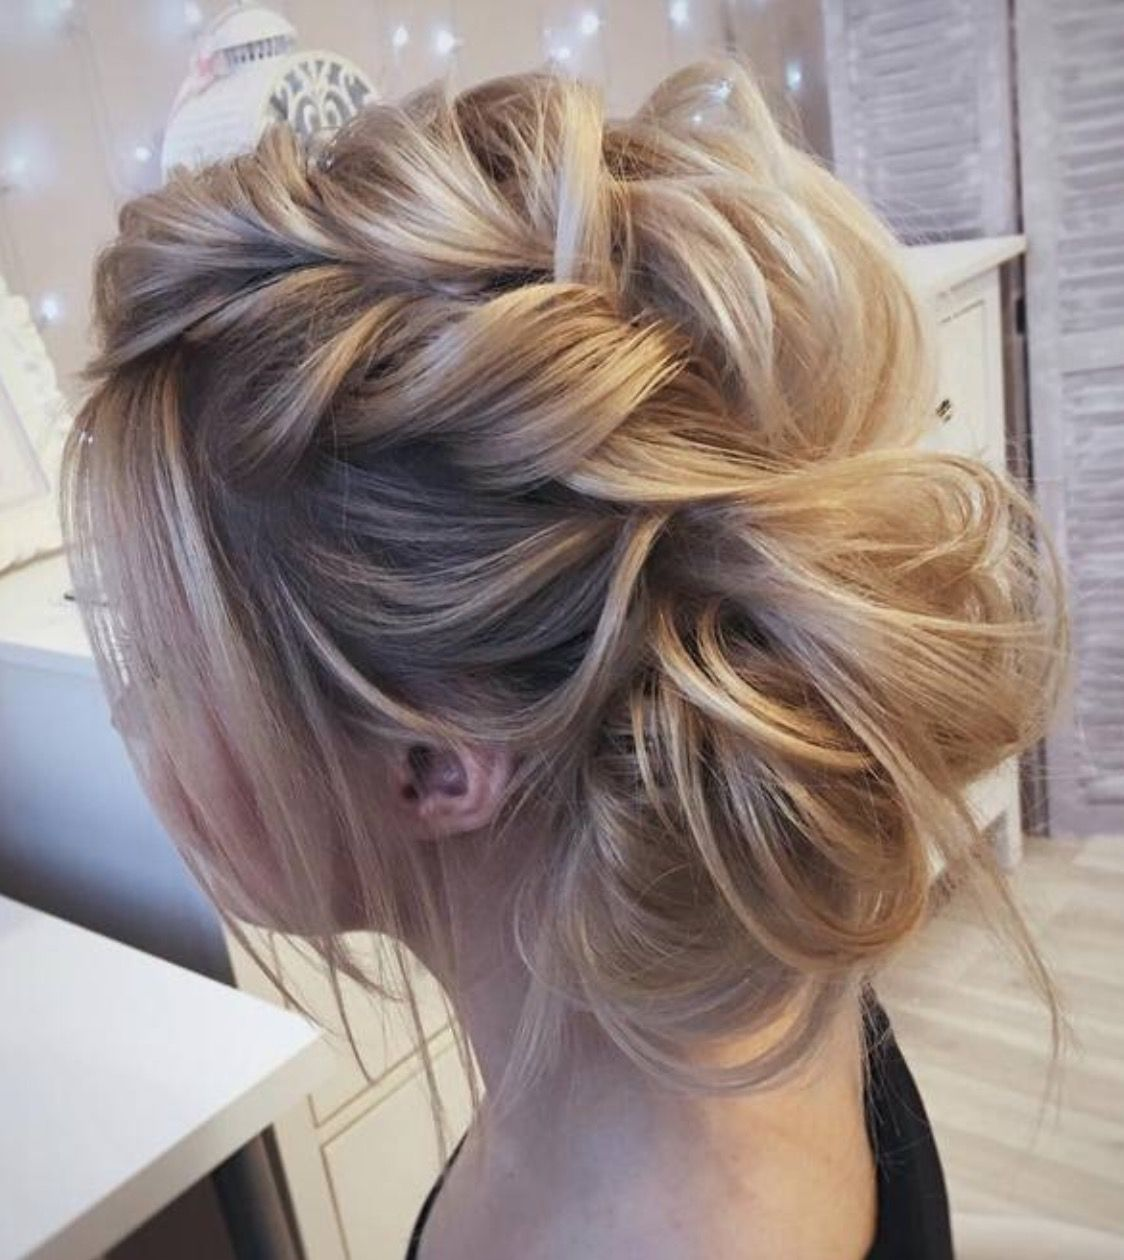 Very Loose Fishtail Braid Pulled Apart Into A Bun With Messy Wispy Pieces Around He Face This Wo With Images Bun Hairstyles For Long Hair Wedding Hairstyles For Long Hair